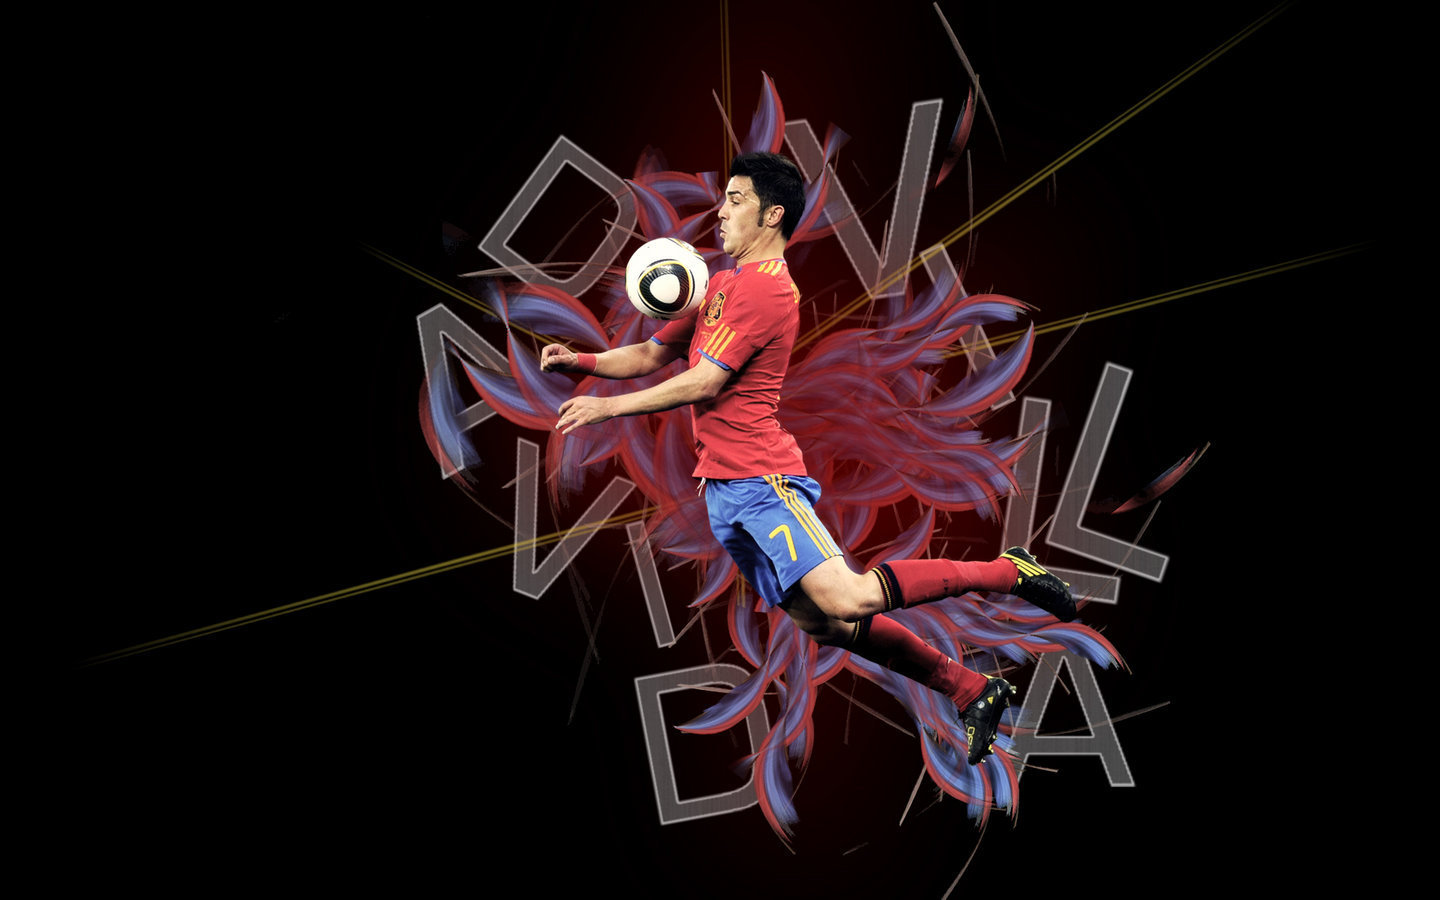 David Villa New HD Wallpapers 2013 All About HD Wallpapers 1440x900